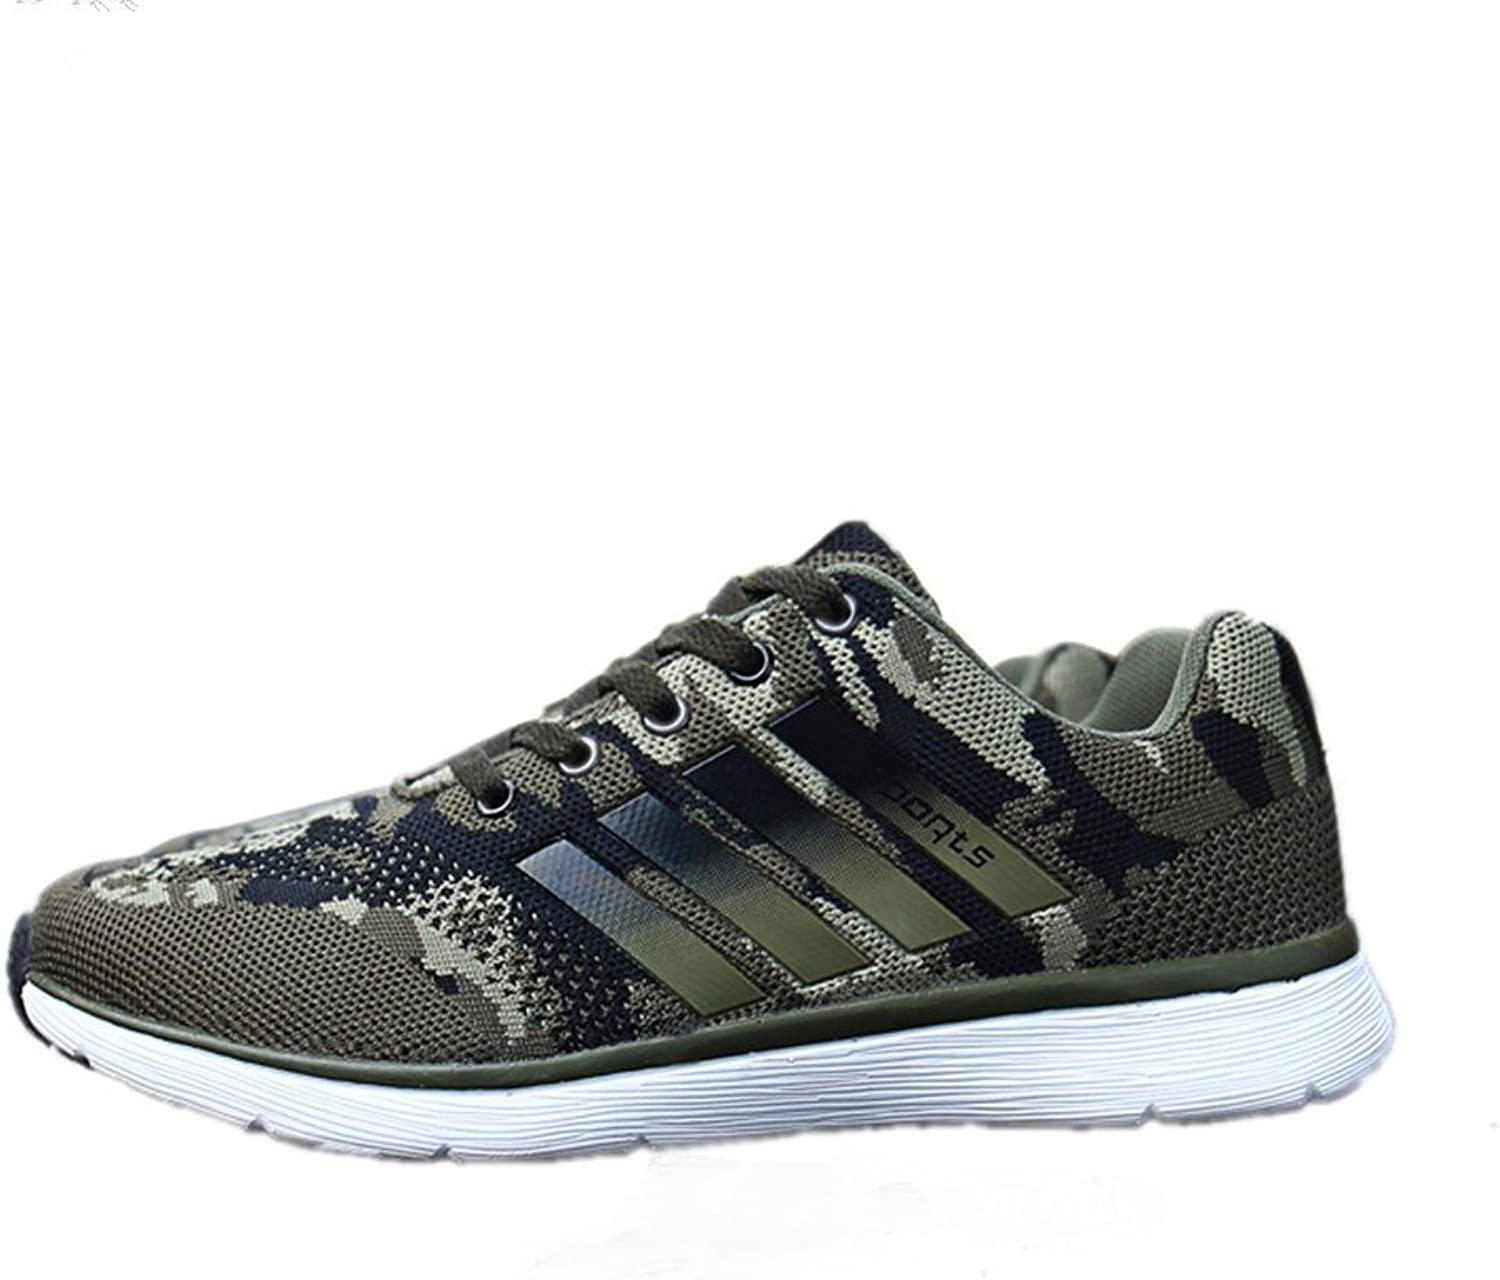 TORISKY Men's Women's Trainers Sports Running Camouflage shoes Casual Walking Platform Sneaker